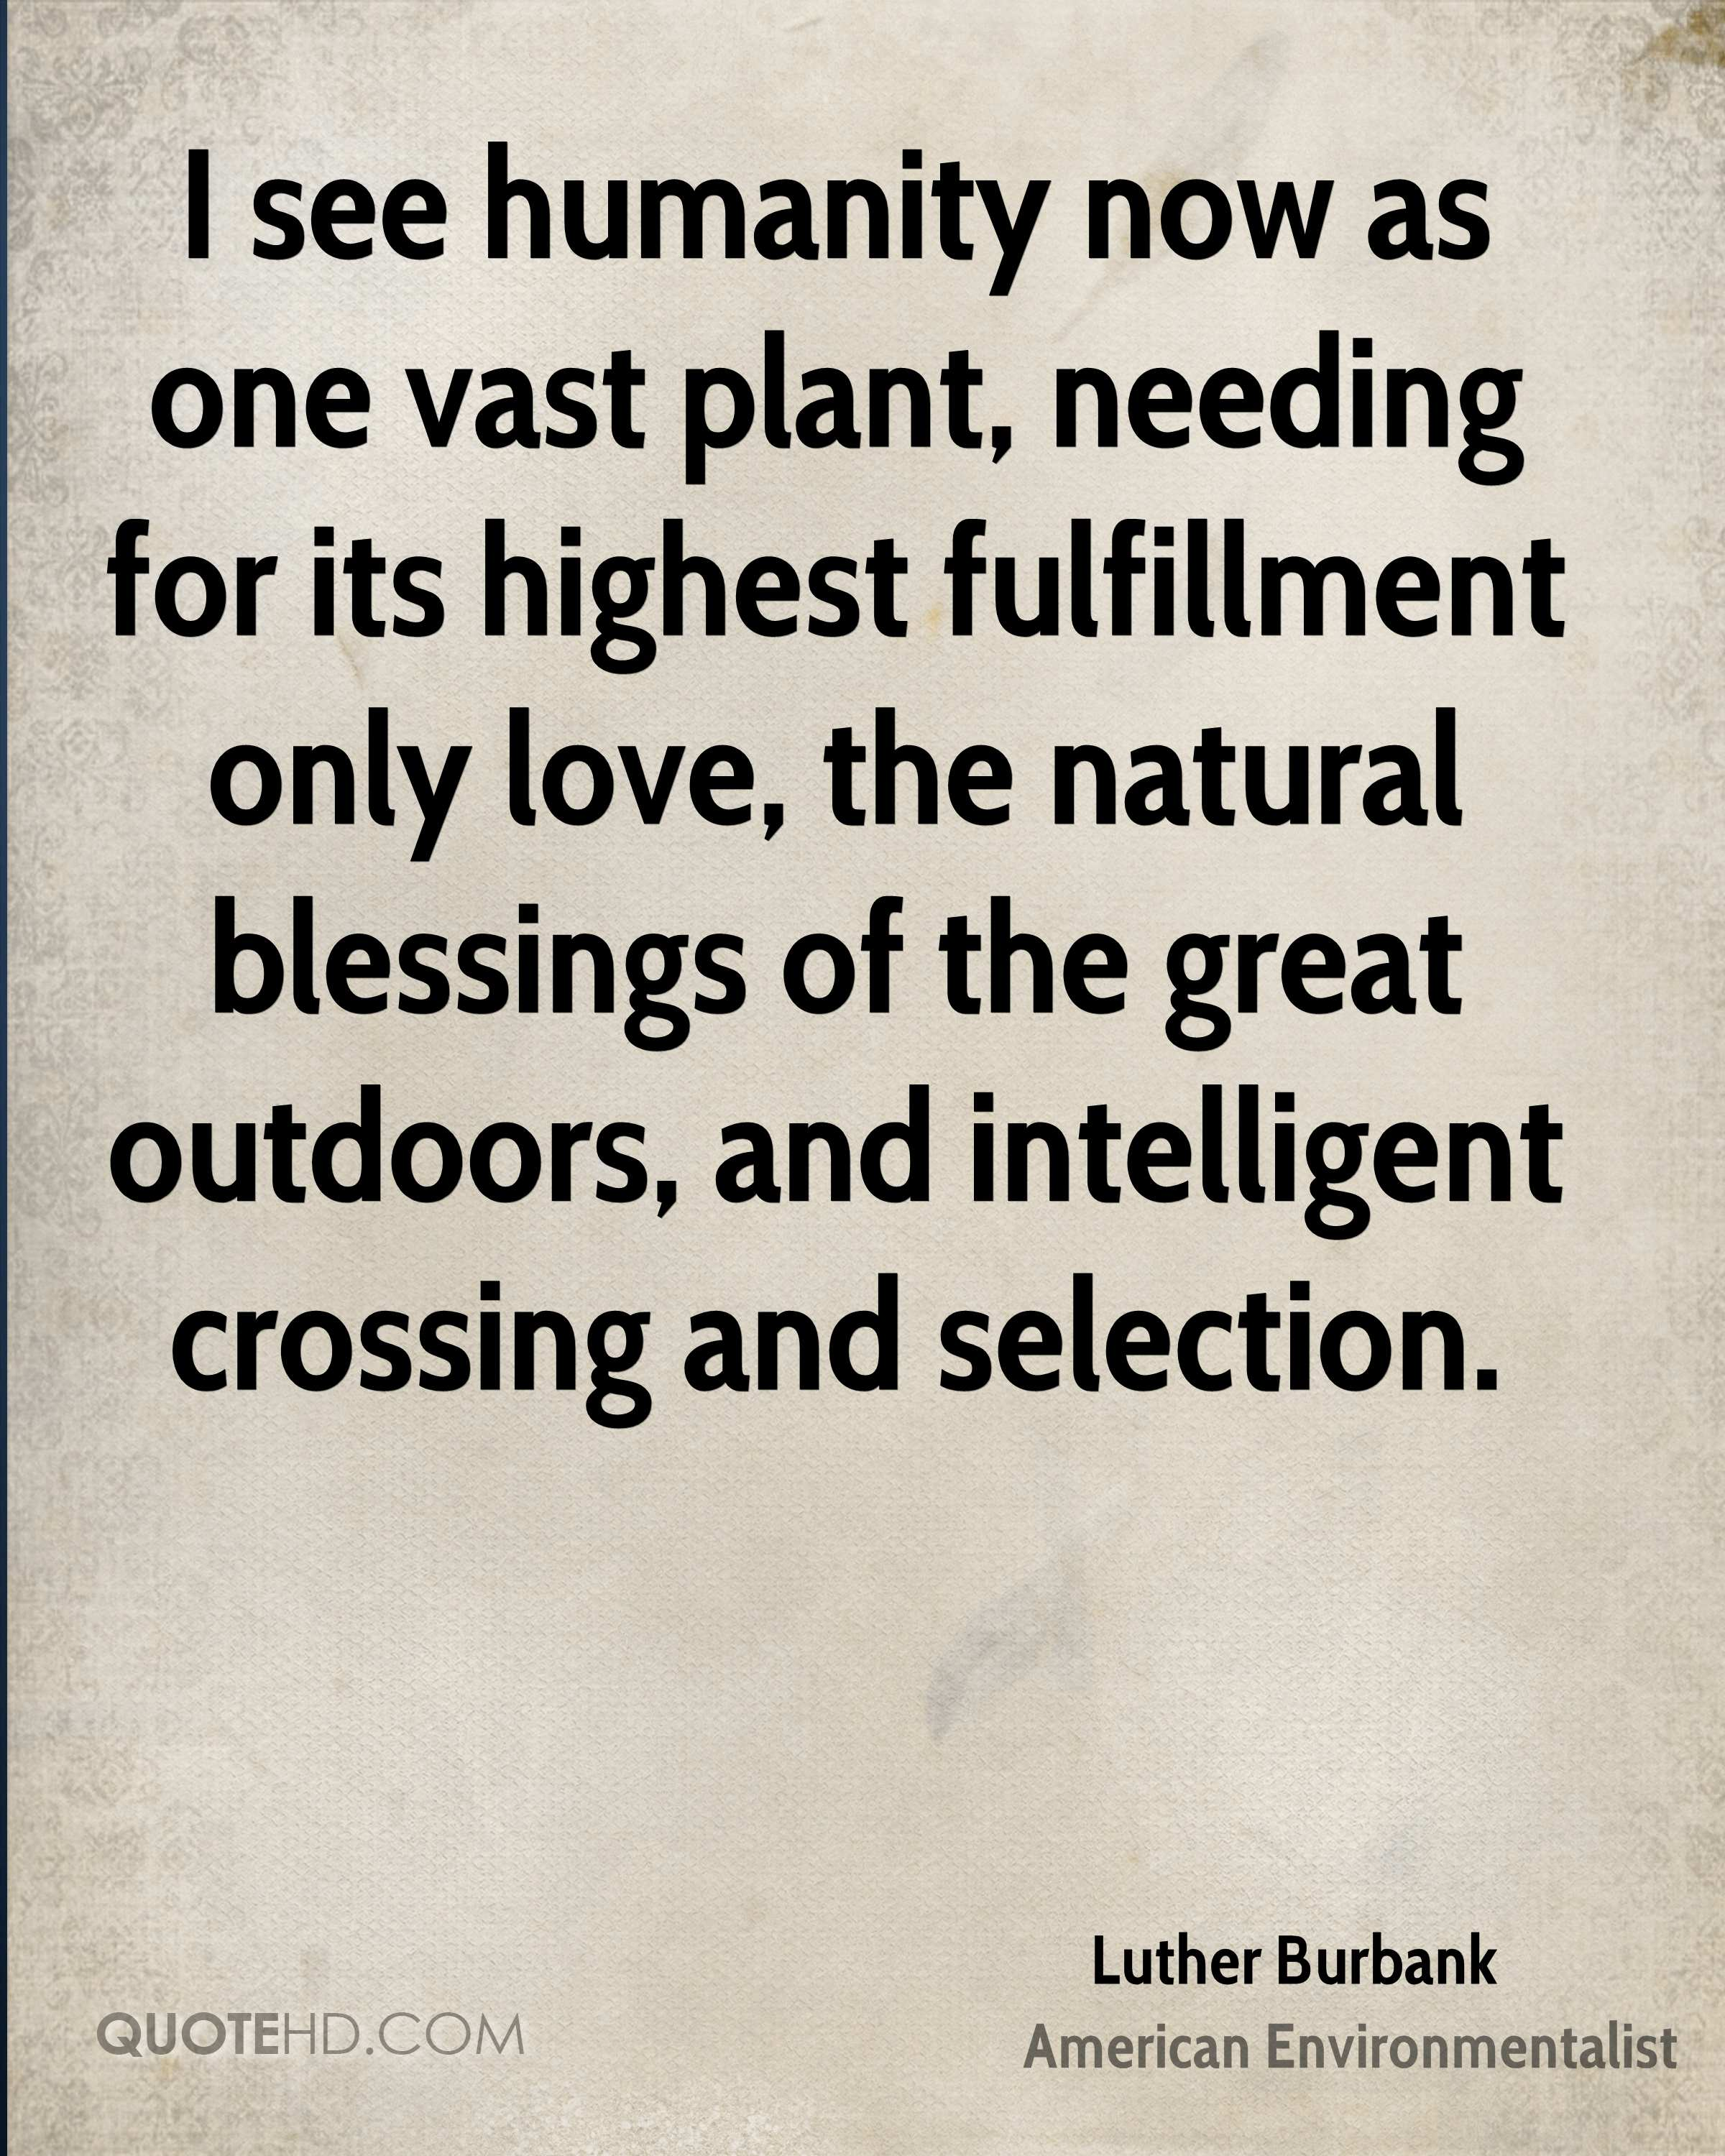 I see humanity now as one vast plant, needing for its highest fulfillment only love, the natural blessings of the great outdoors, and intelligent crossing and selection.